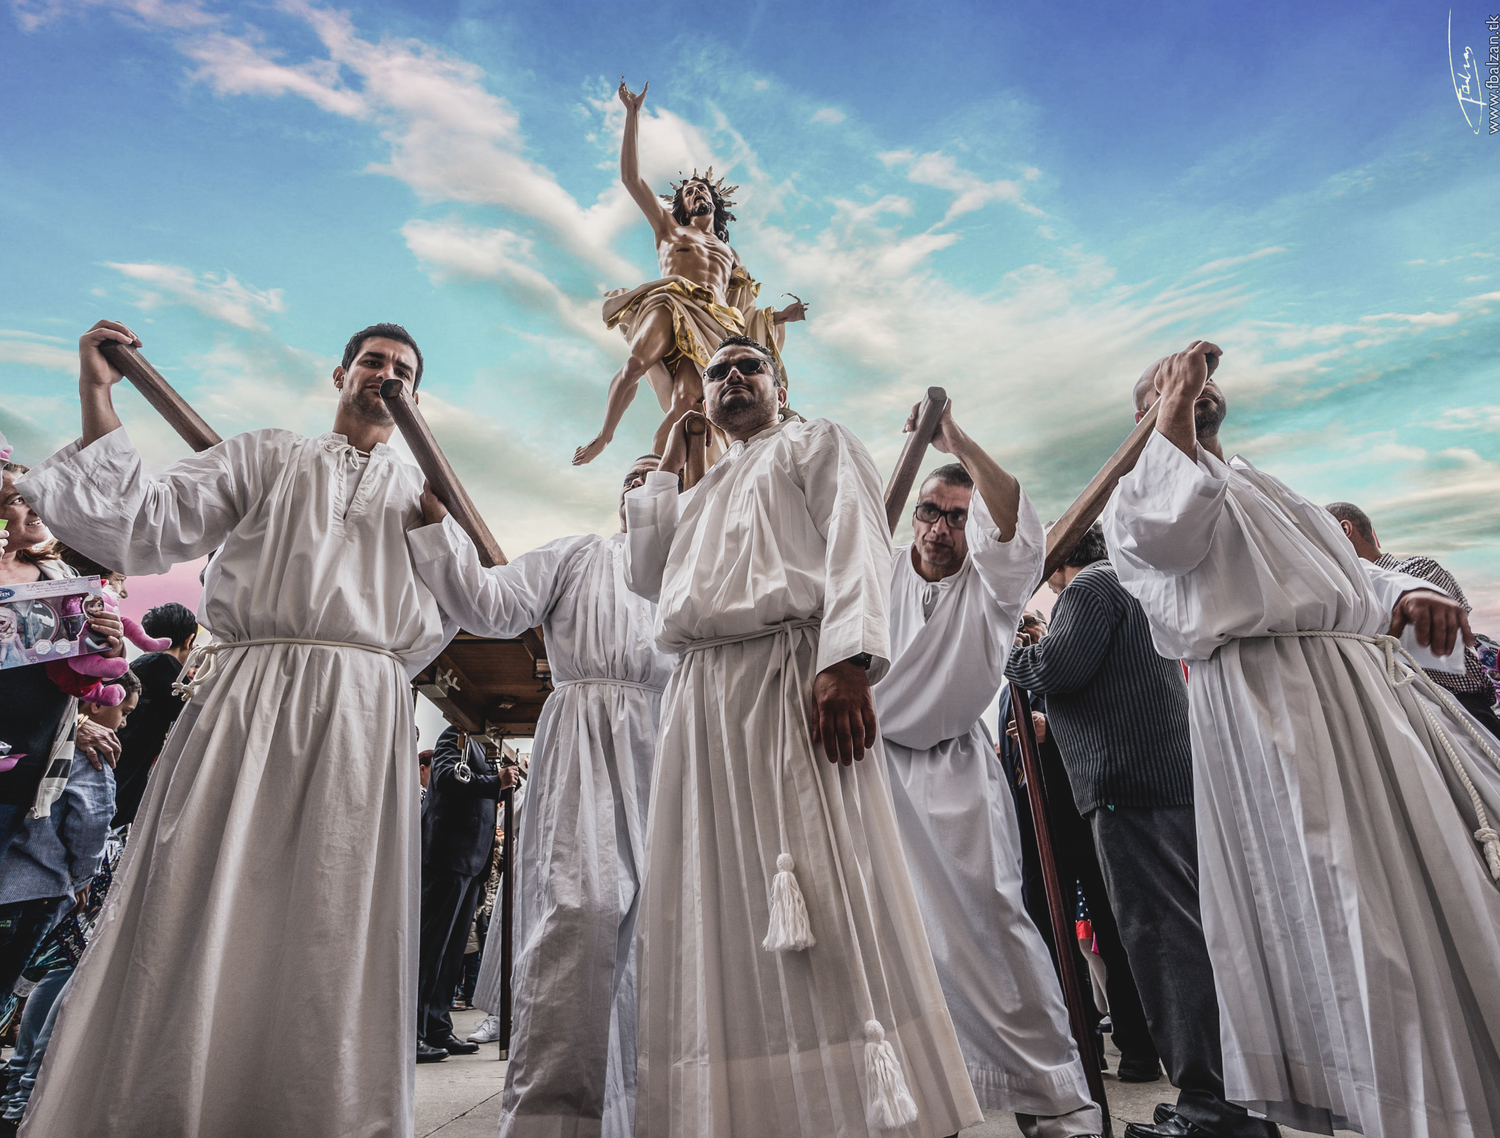 Photo © Franklin Balzan | Holy Week in Malta